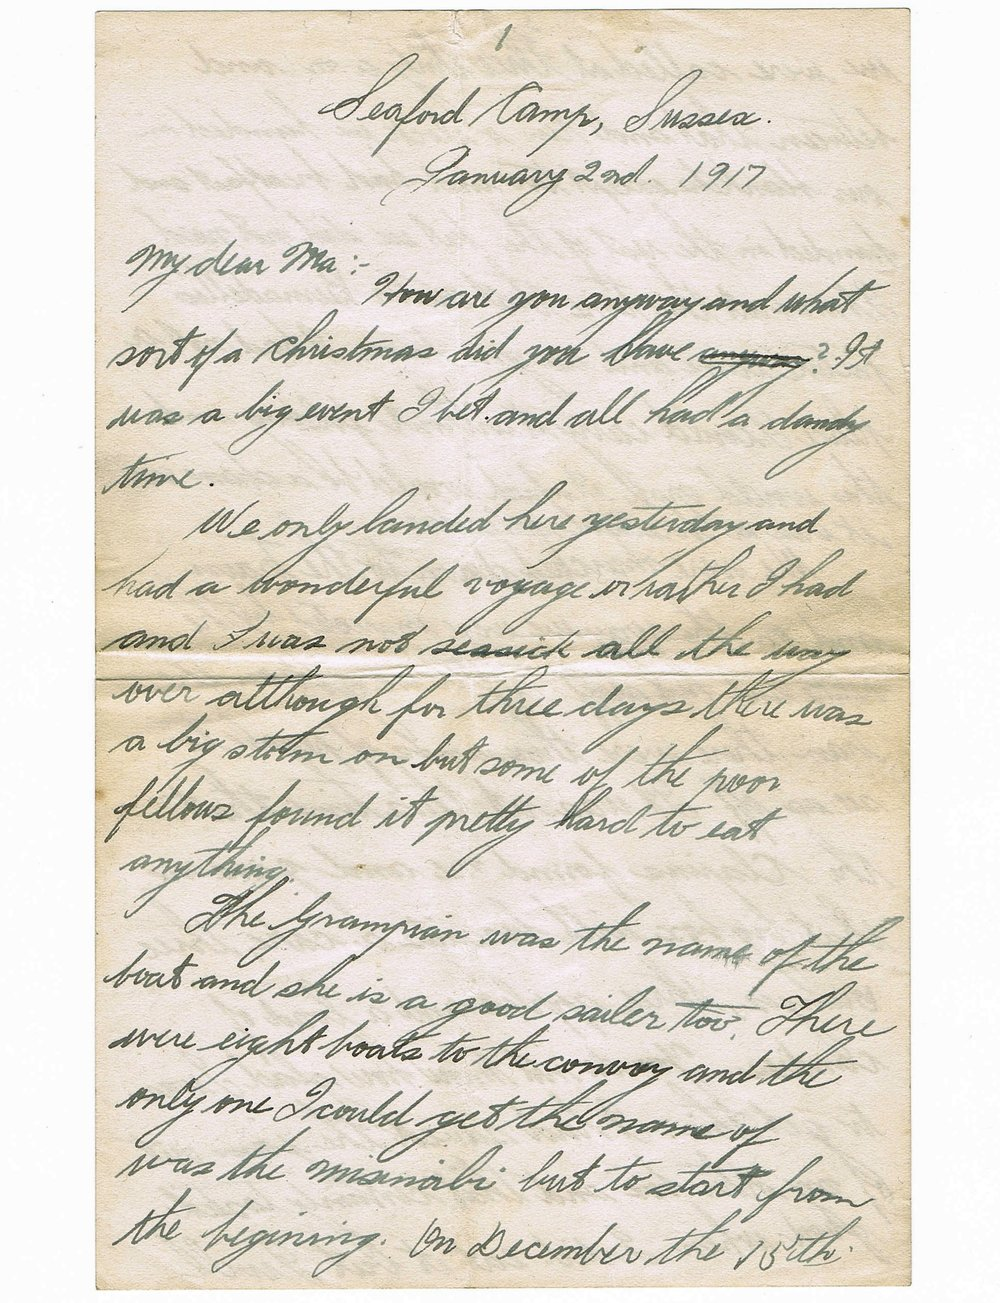 First page of handwritten letter